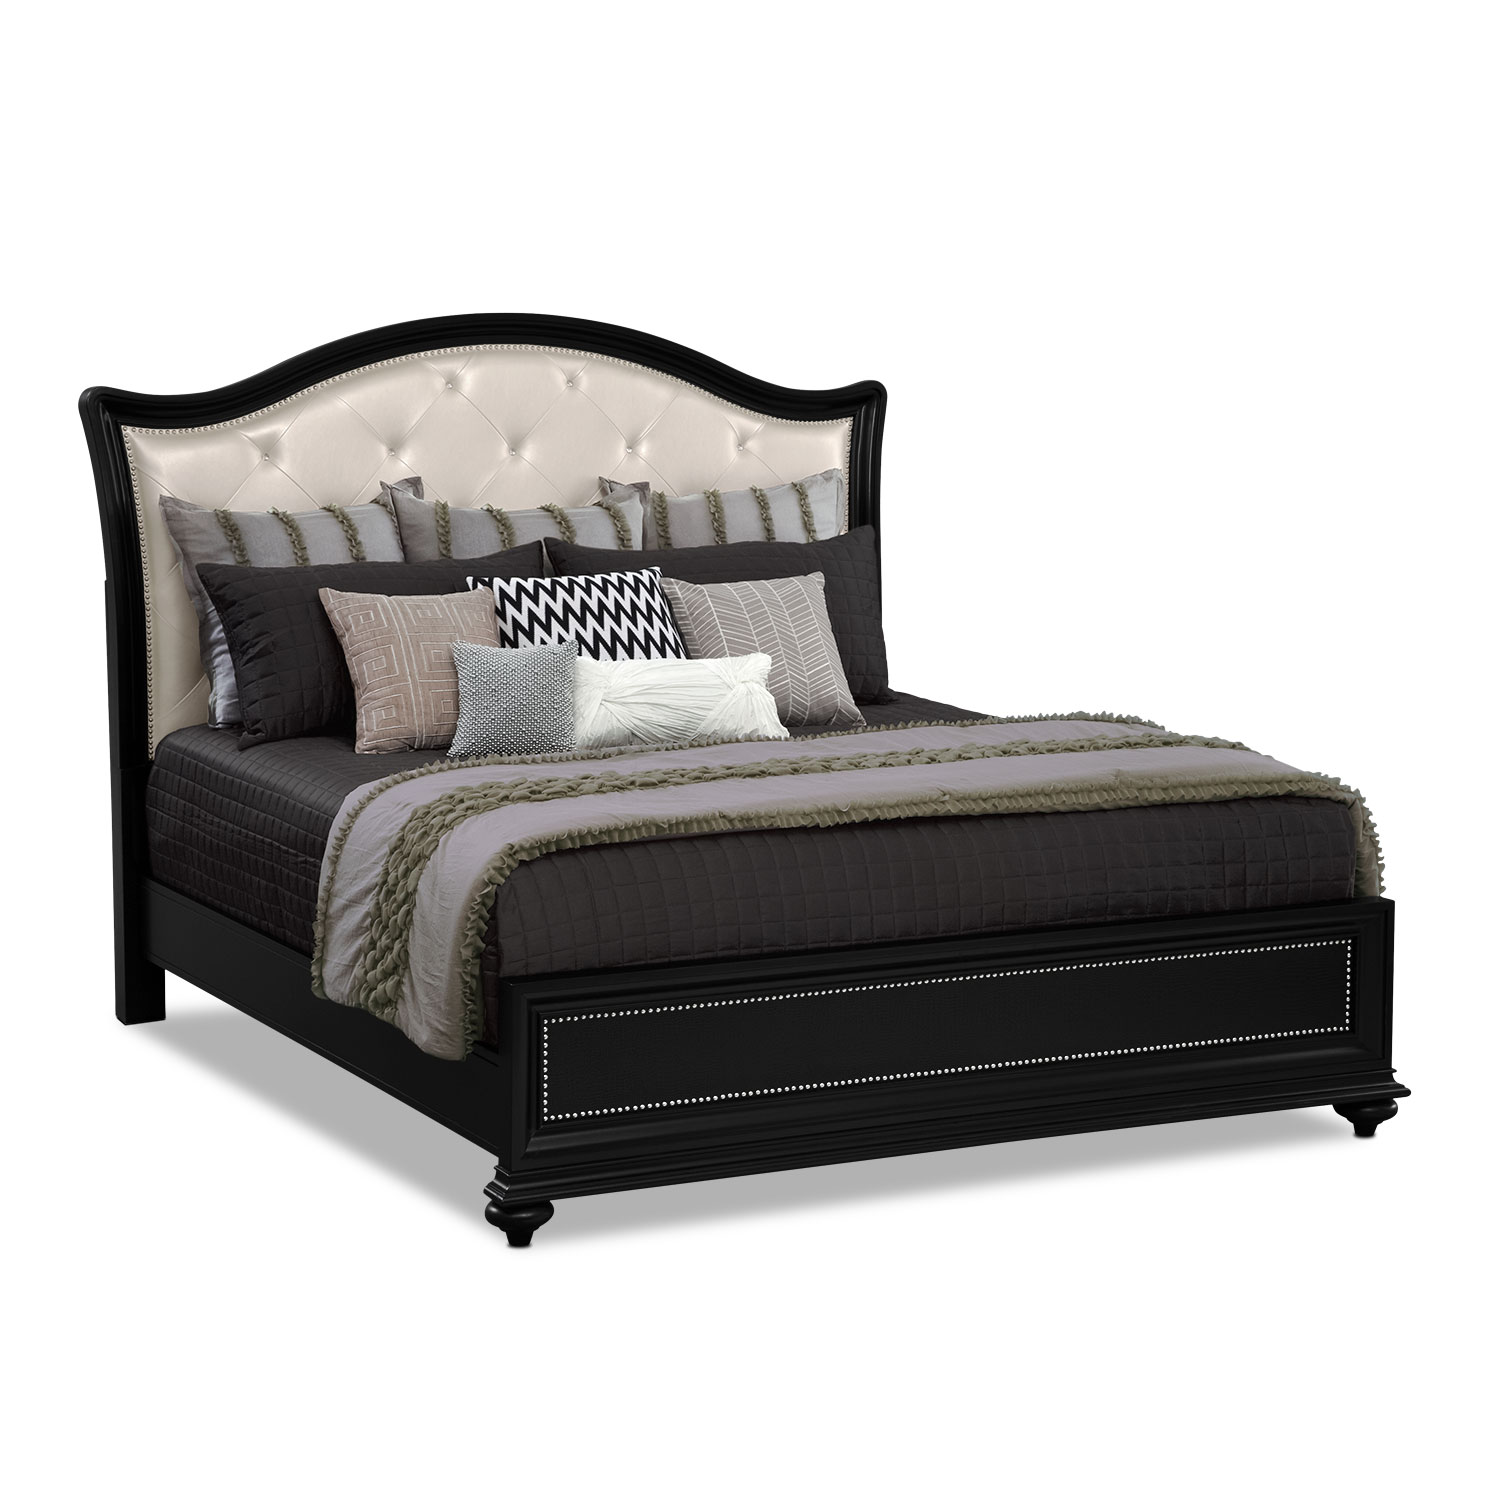 Marilyn 5-Piece King Bedroom Set - Ebony | Value City Furniture